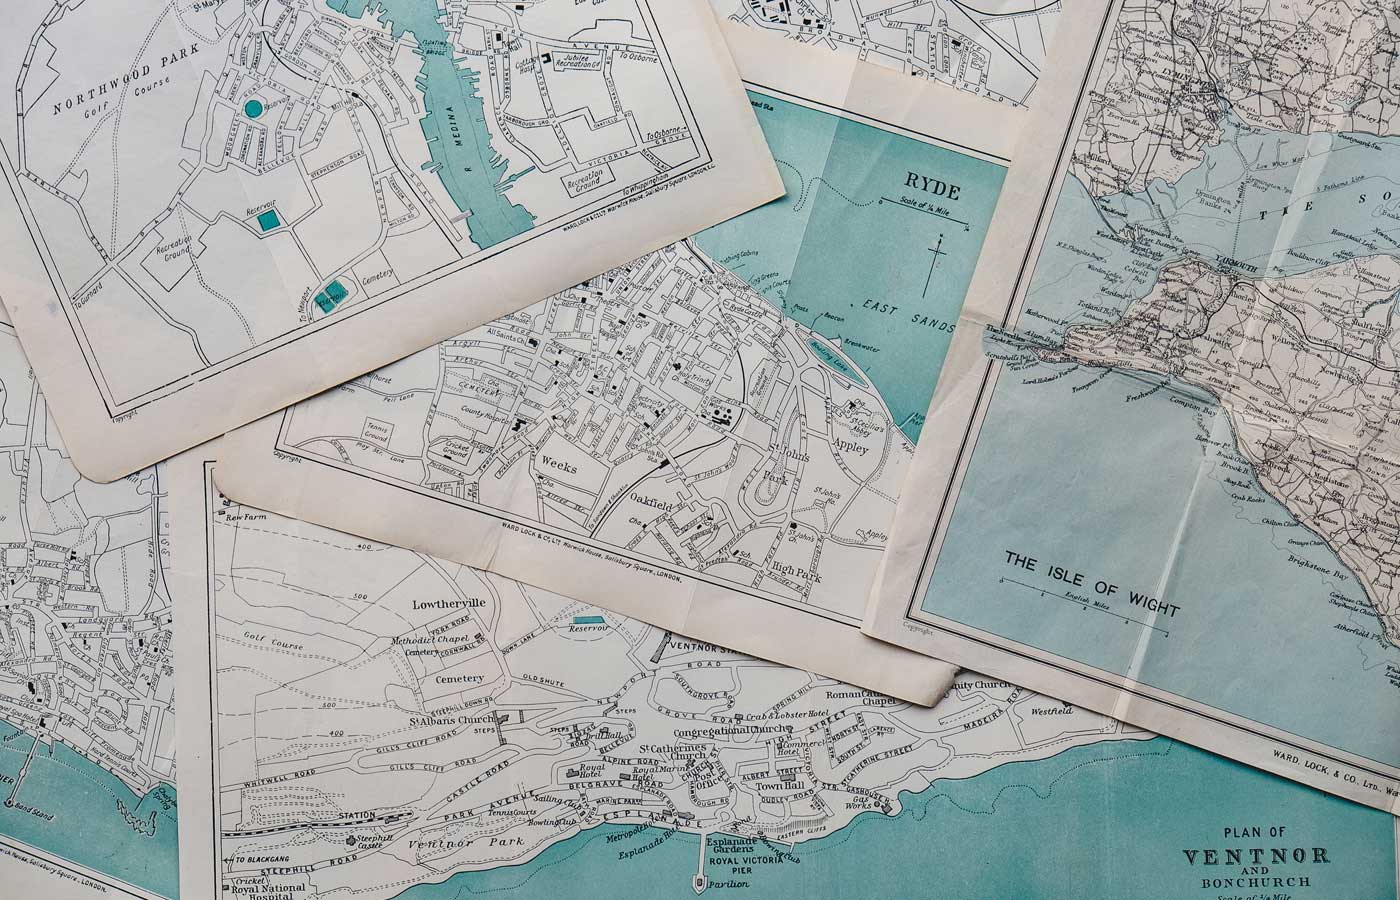 Shows a collection of local maps